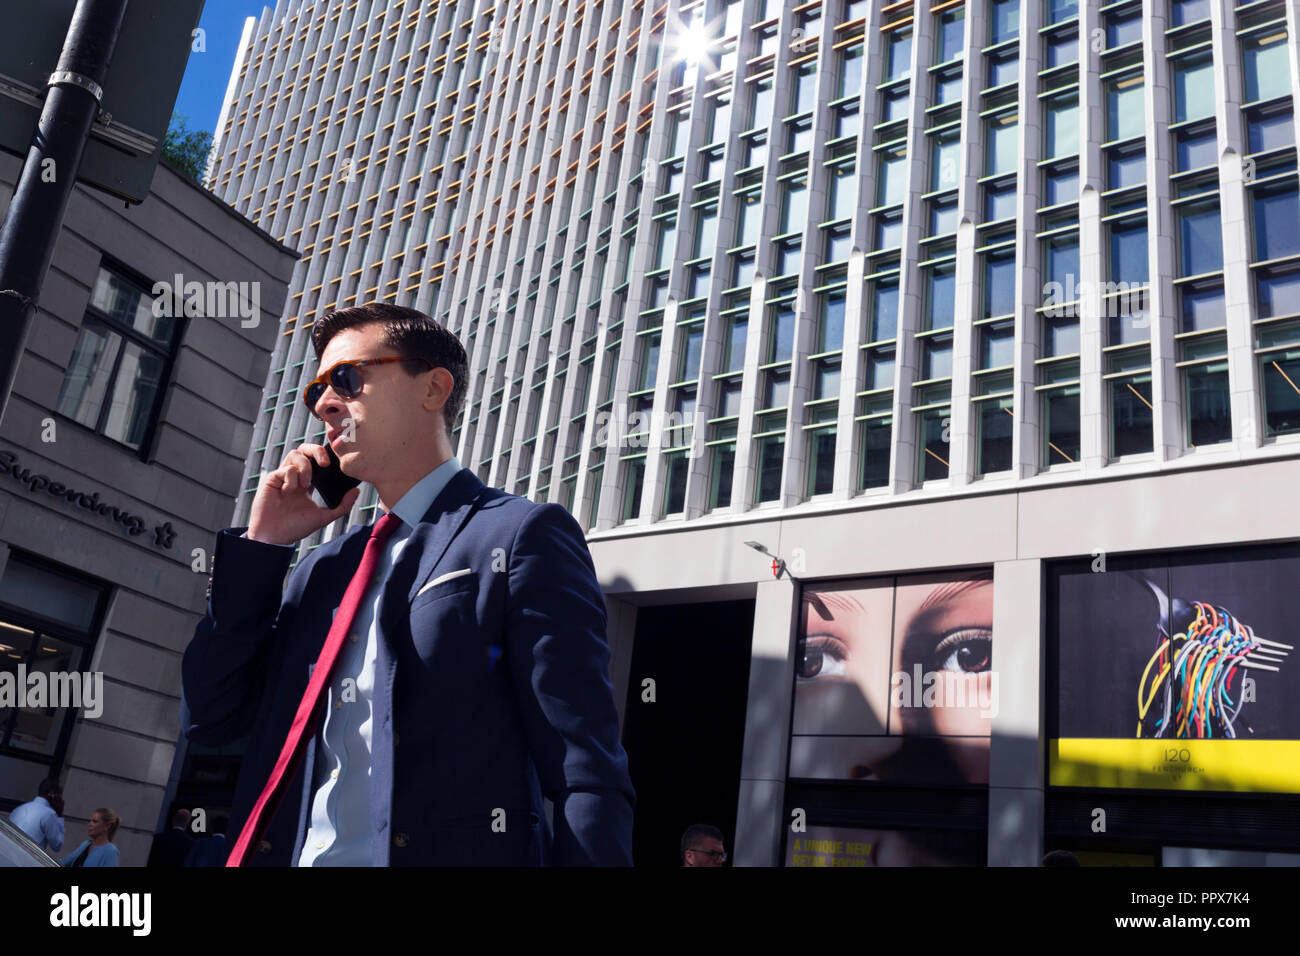 A pair of eyes and a male passer-by on Fenchurch Street - in the heart of the capital's financial district (aka The Square Mile), on 24th September 2018, in London, England. - Stock Image